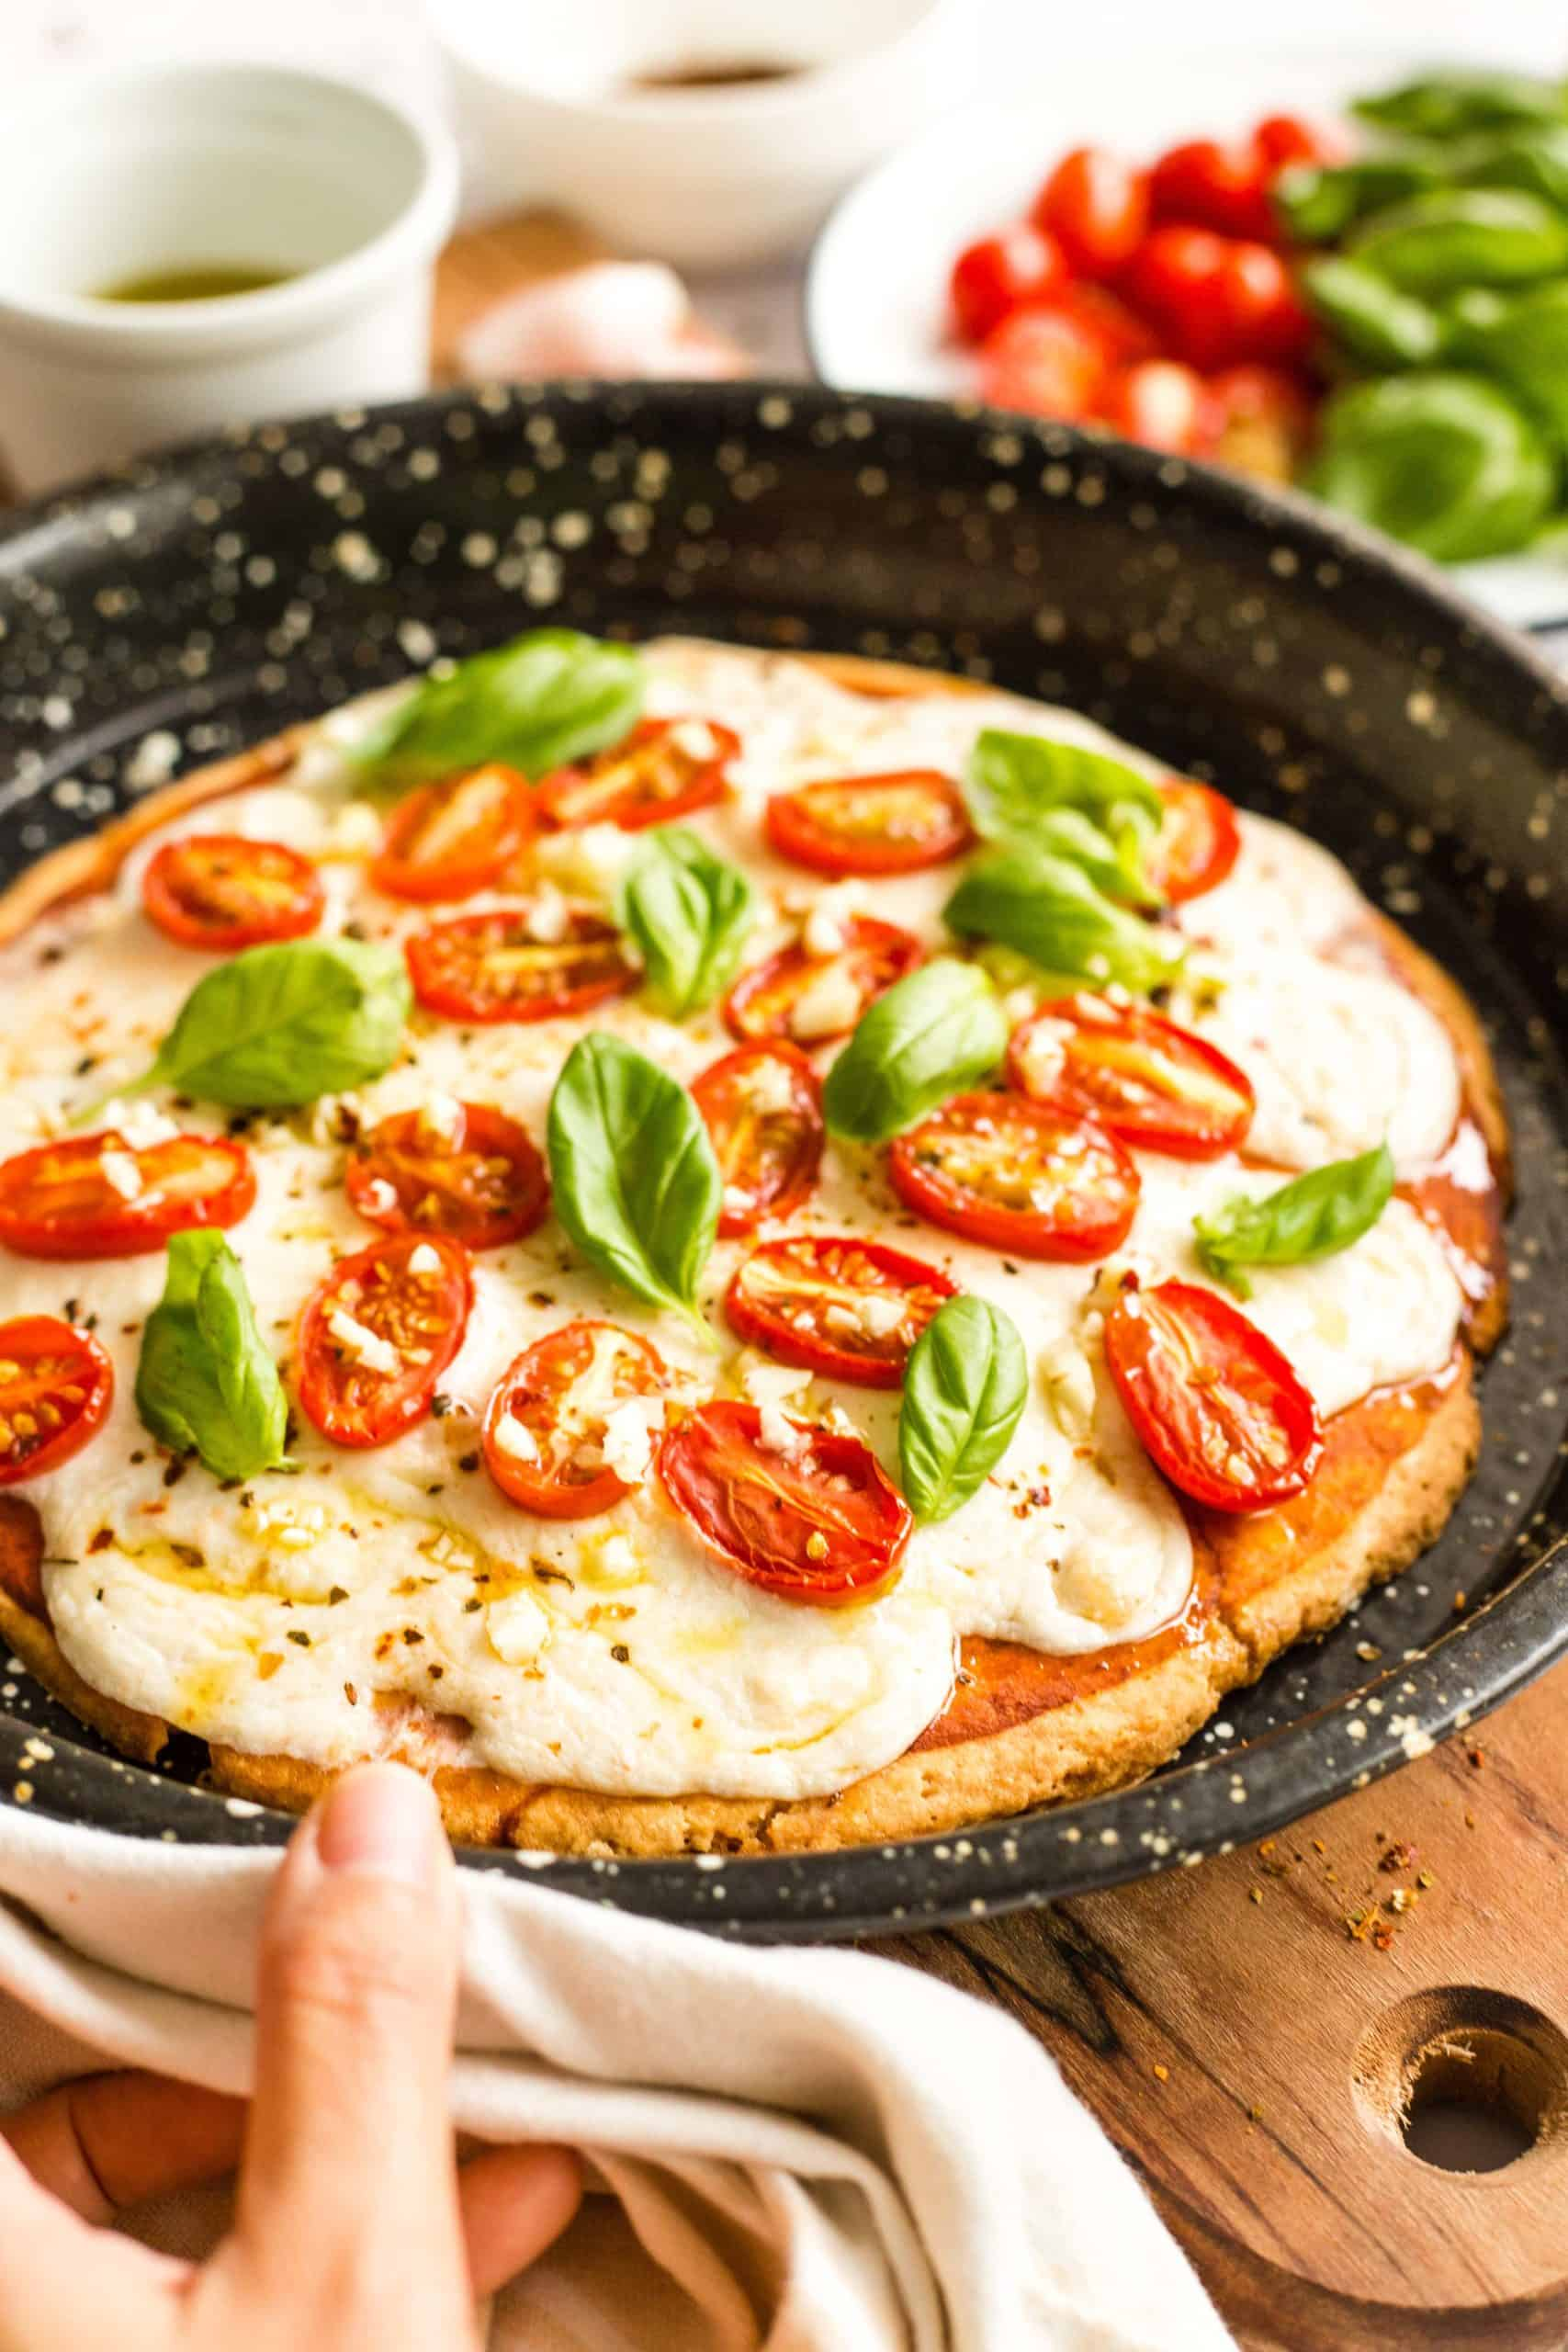 Hand holding a pizza pan with a freshly baked gluten-free caprese pizza.